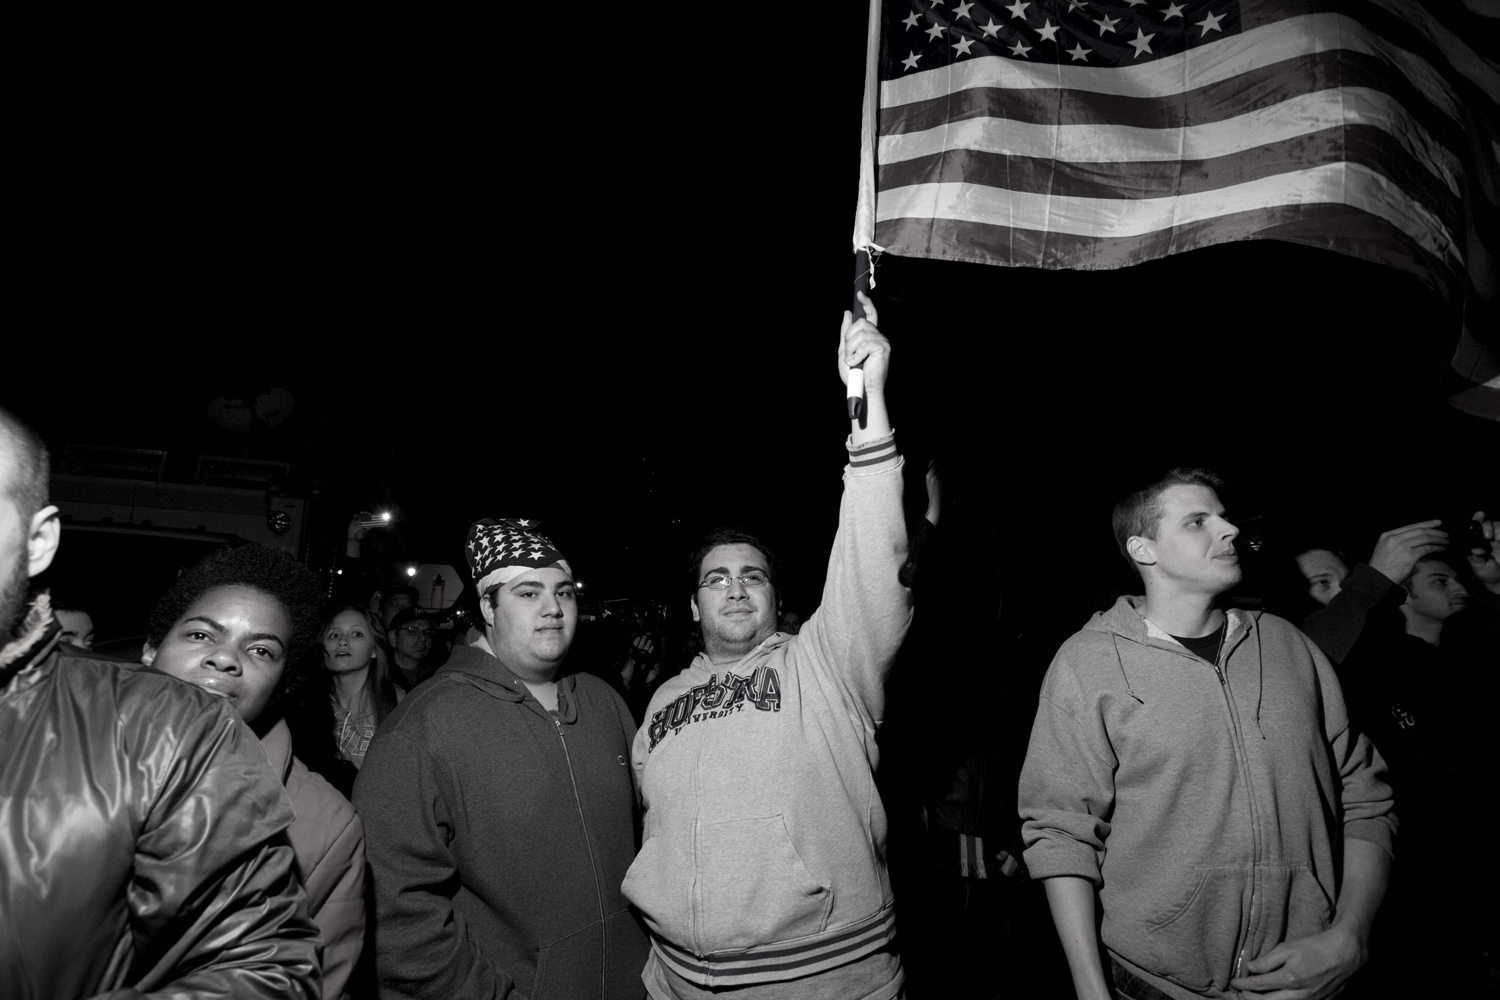 The word for the night was  closure . It sprung from almost every persons' lips who came to the hallowed ground of the World Trade Center to mark an end of sorts to our nation's most painful open wound. Many where young patriotic men waving or wrapping themselves in the stars and stripes.